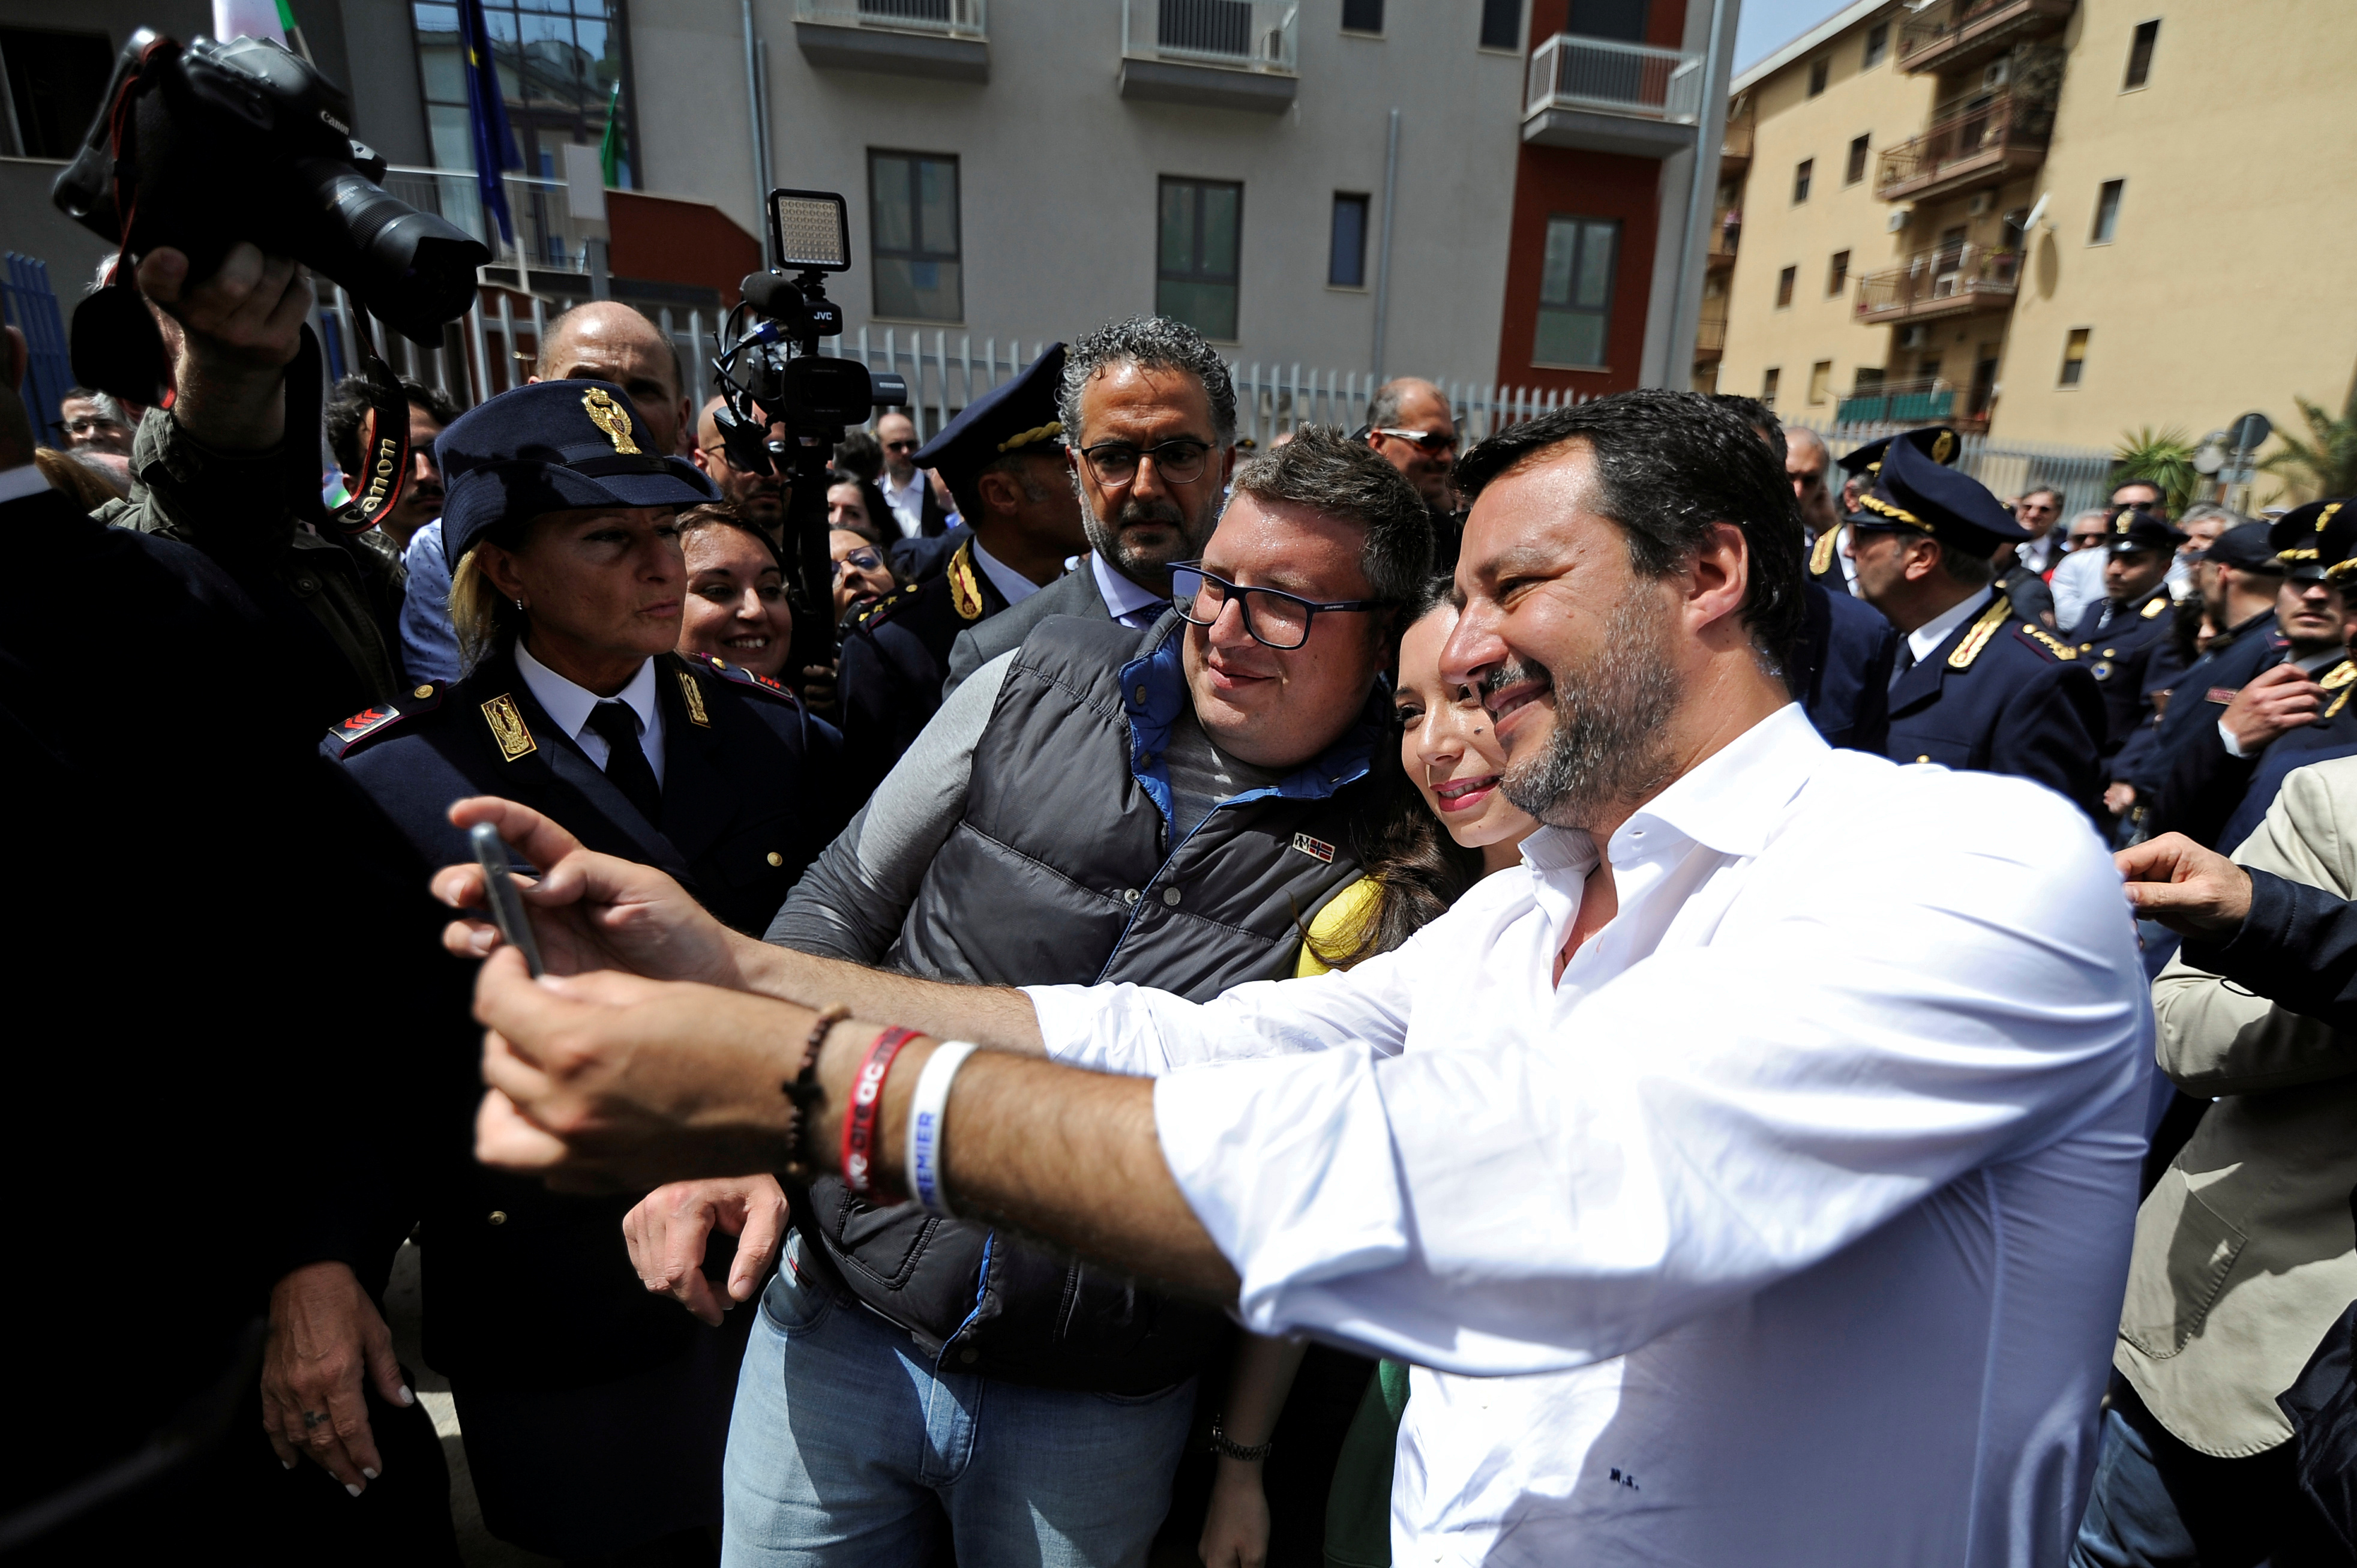 FILE - Italian Interior Minister Matteo Salvini takes a selfie with supporters in Corleone, Sicily, Italy April 25, 2019.